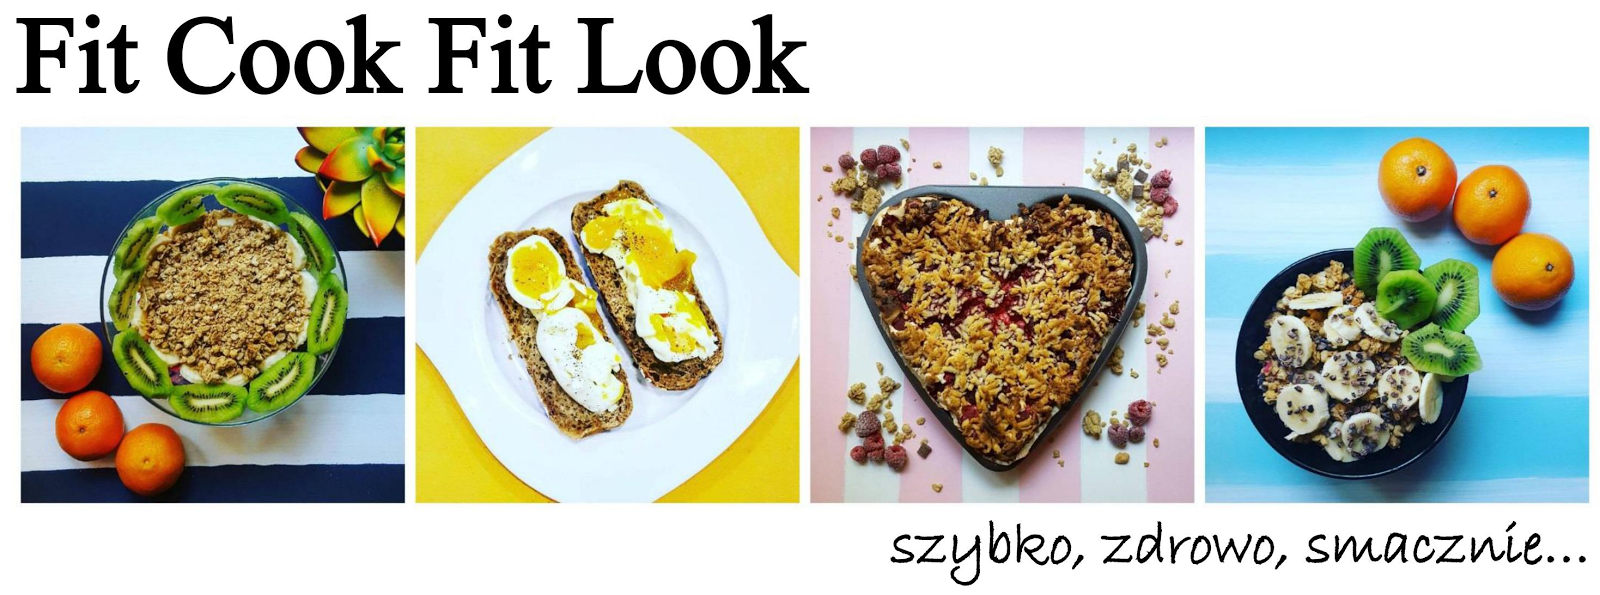 fitcookfitlook